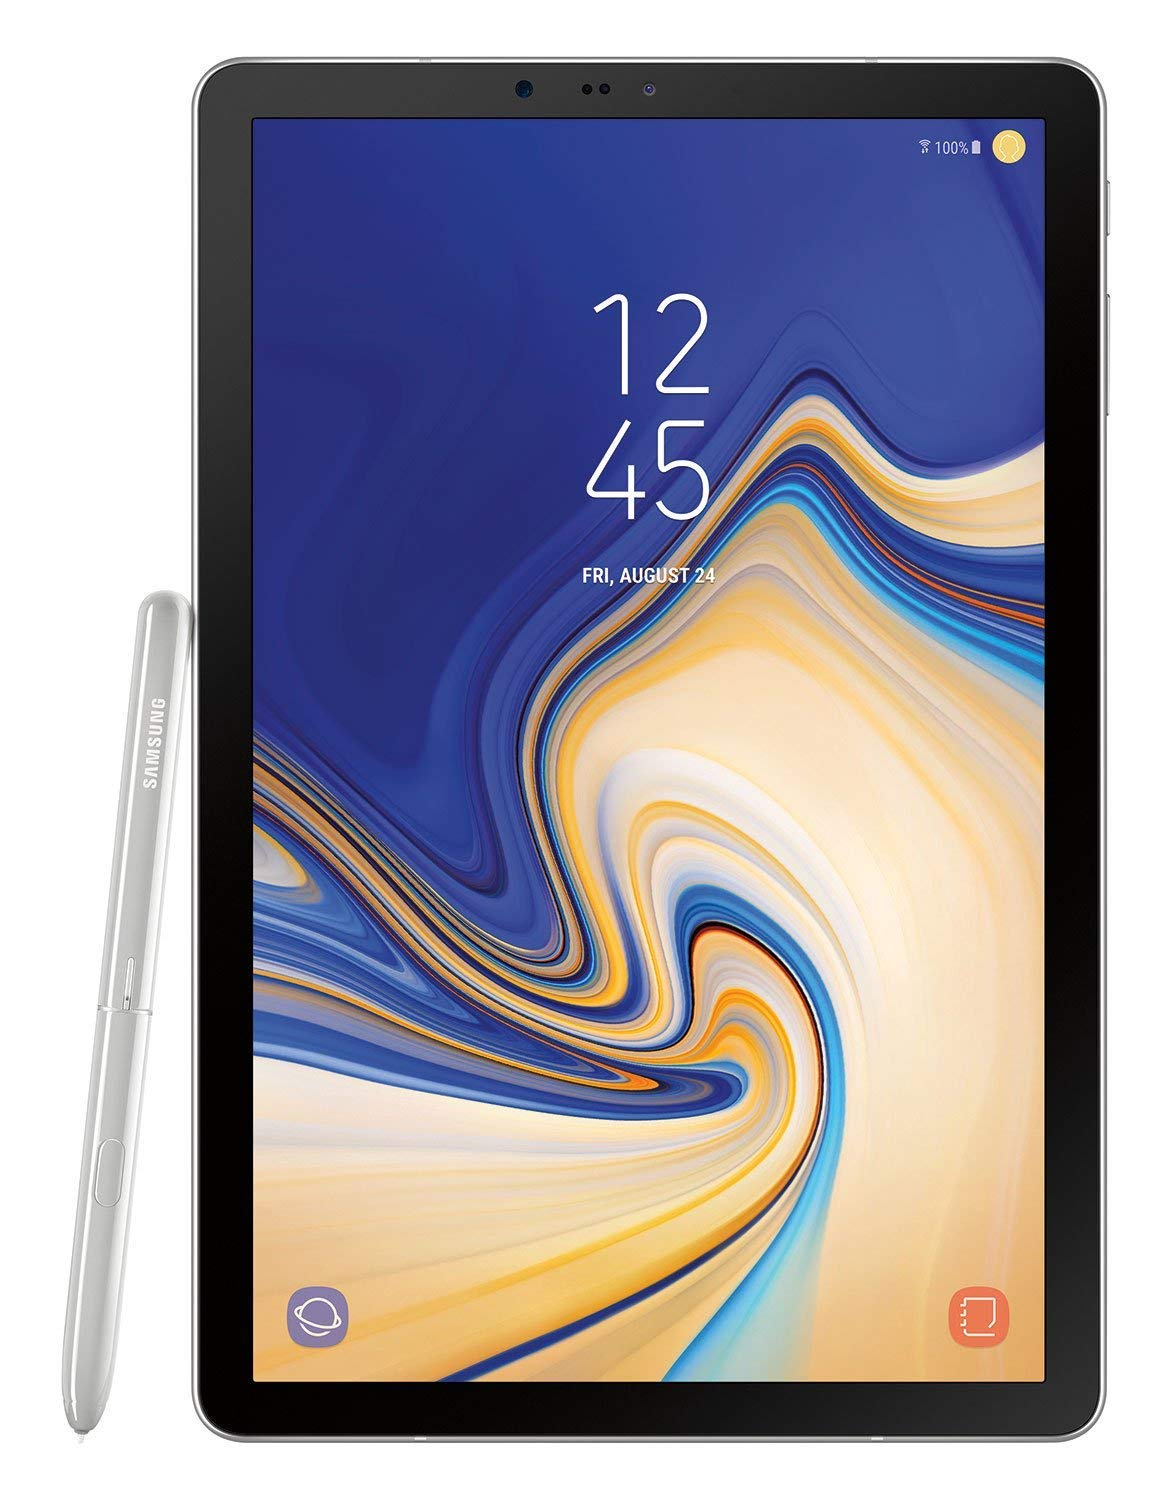 71RB5zcC3WL. SL1500  - The Best 10 Tablets in 2019 You Can Buy now